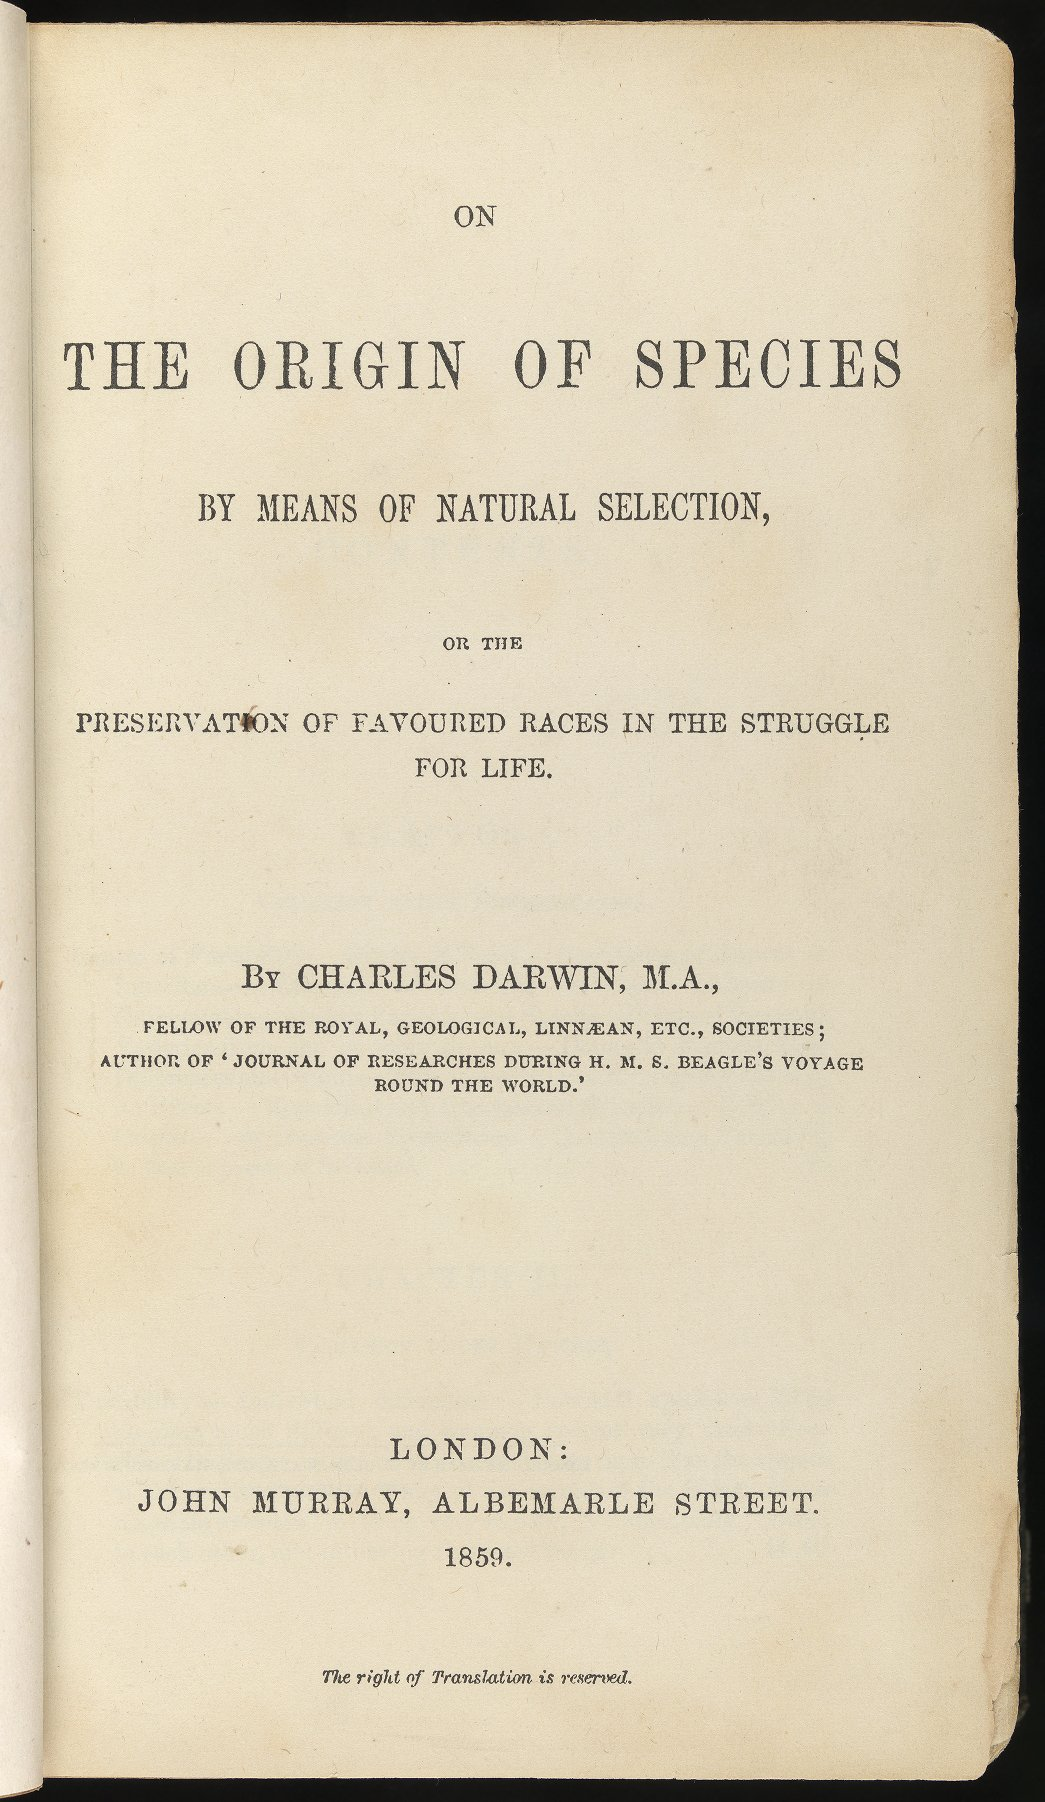 Title page of The Origin of Species